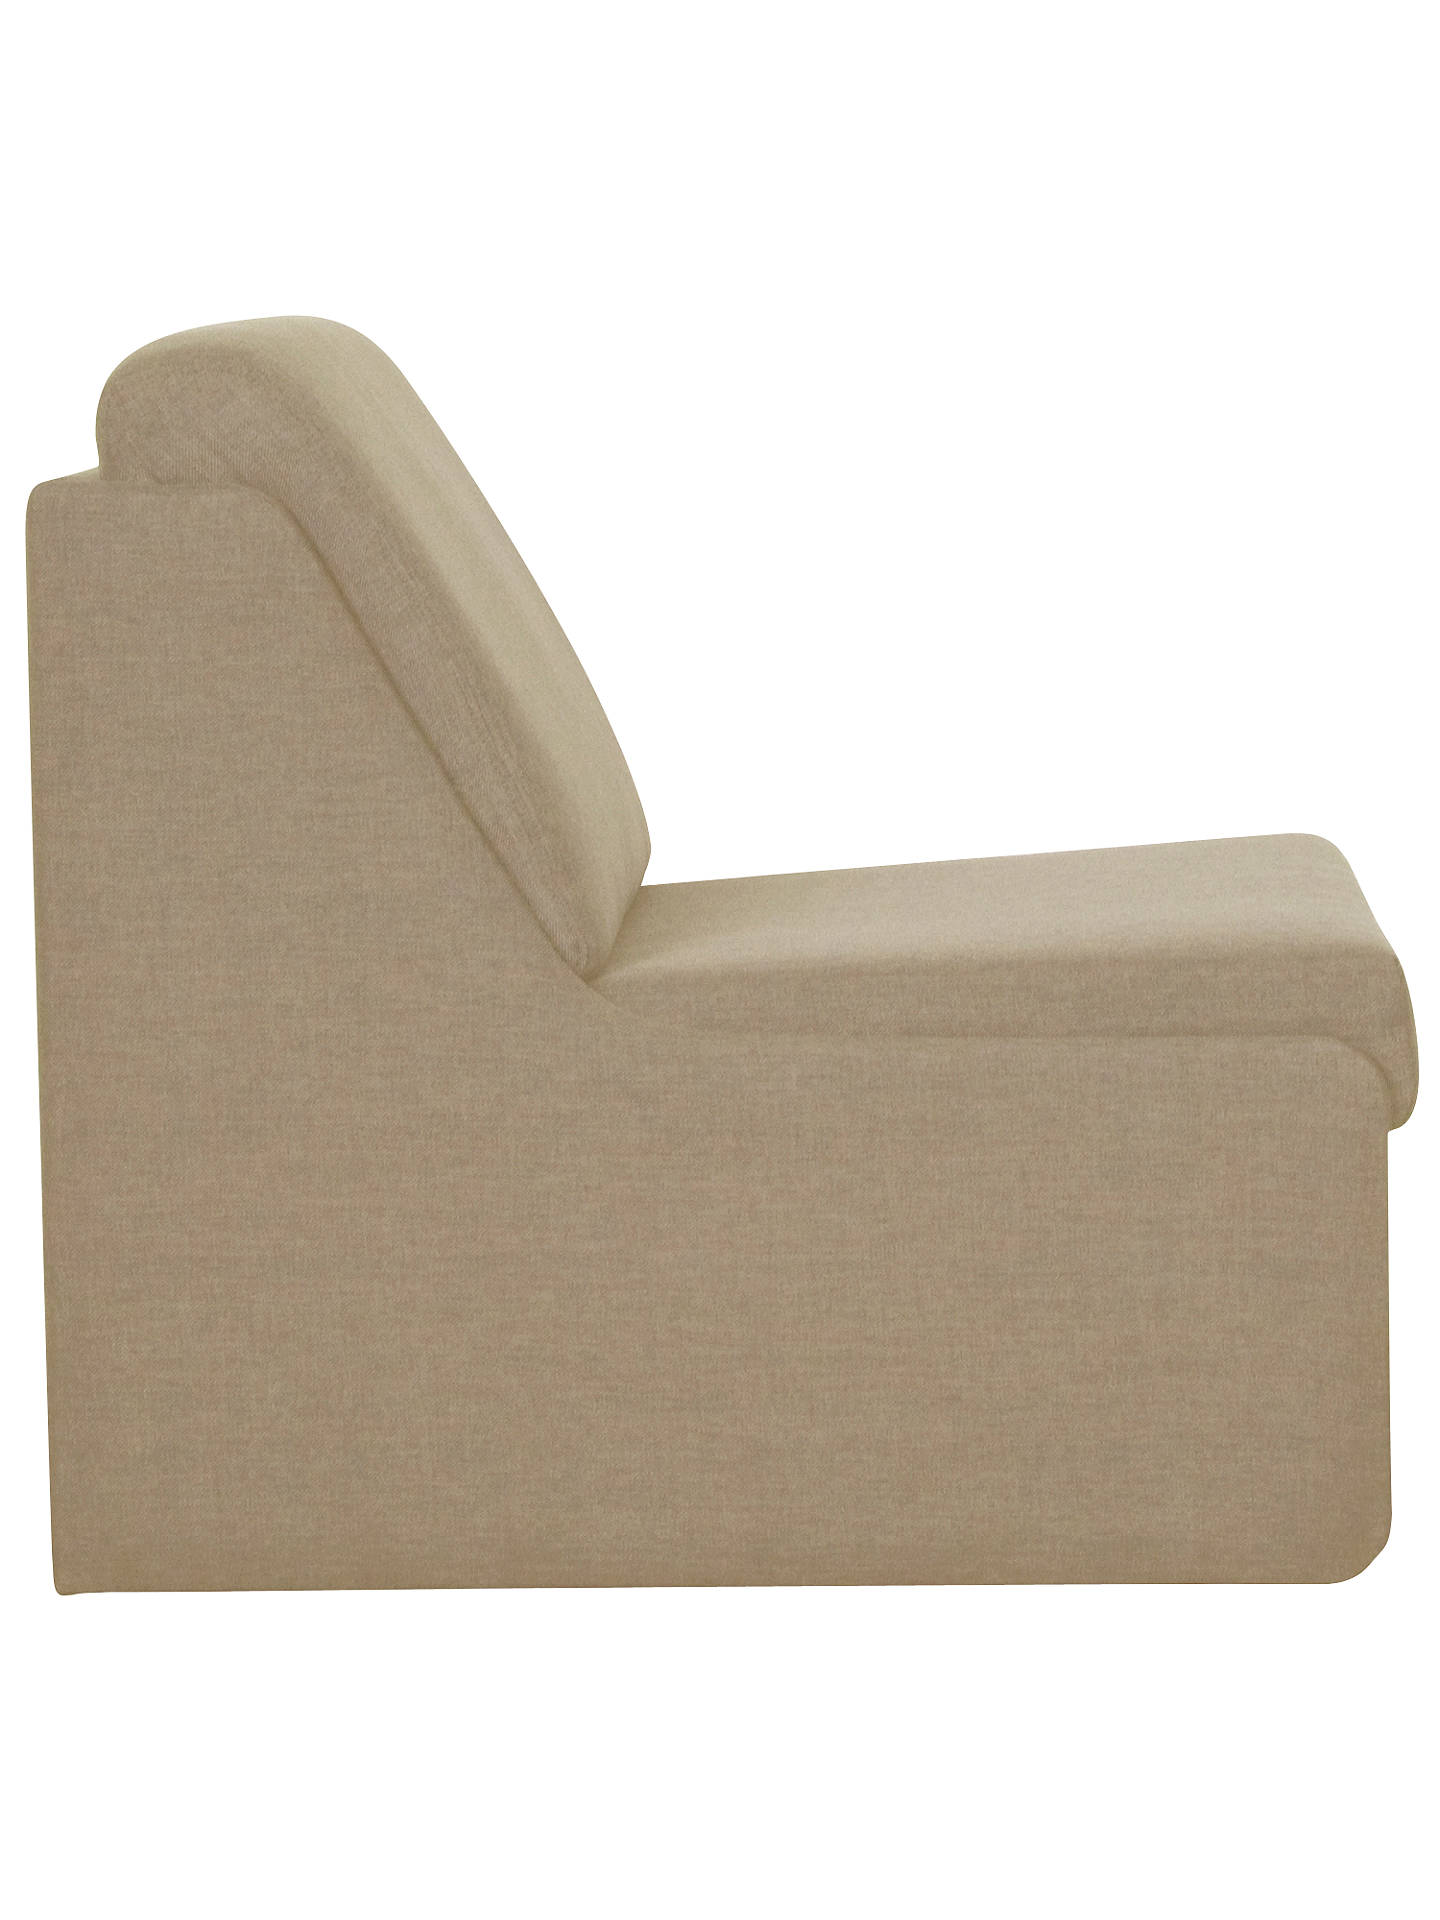 Pleasing John Lewis Jessie Chair Bed Oslo French Grey At John Lewis Cjindustries Chair Design For Home Cjindustriesco